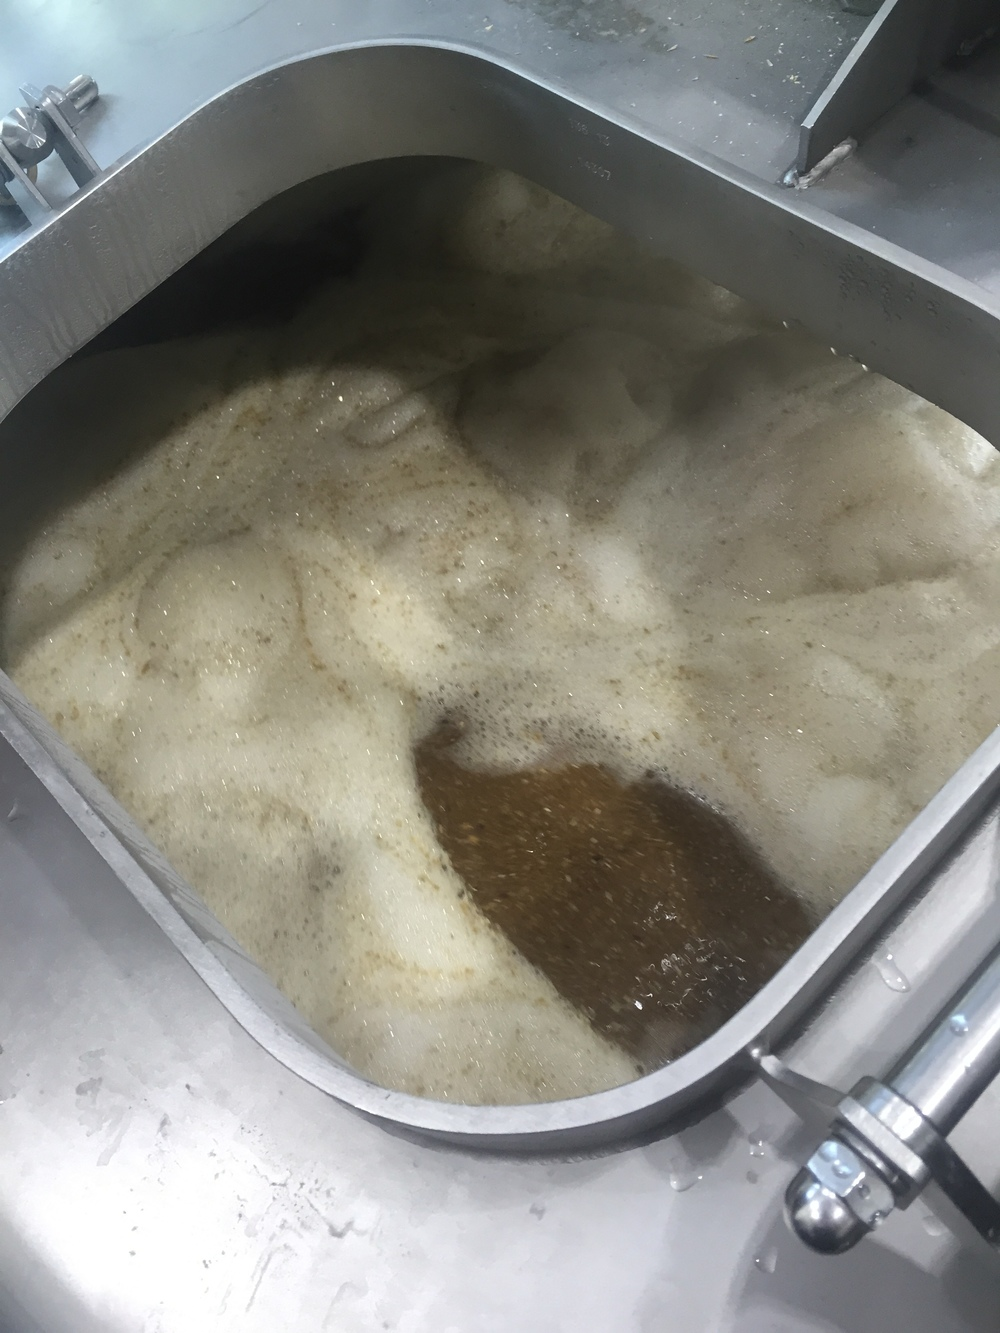 The beginnings of our 1747 ale.